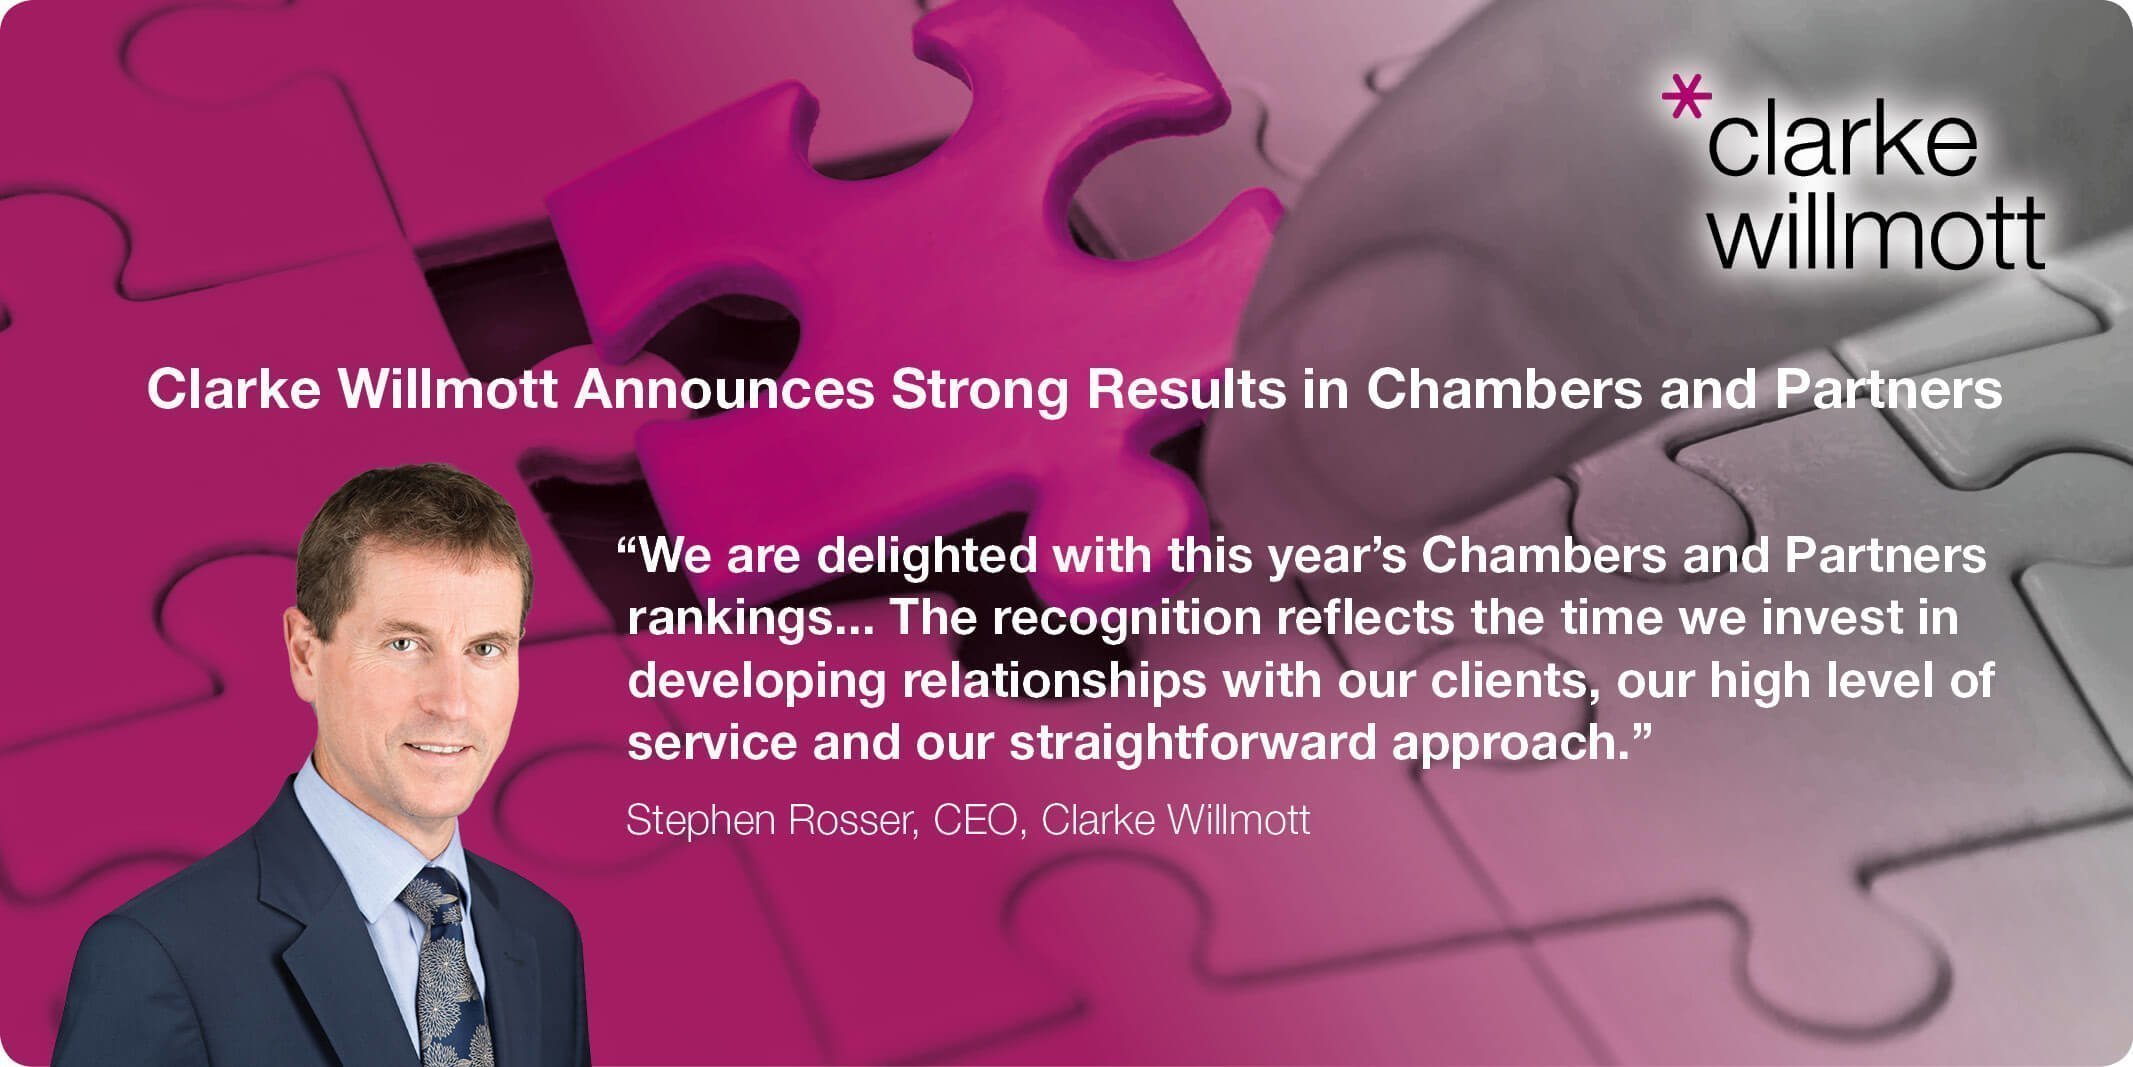 Chief Executive Stephen Rosser discusses Clarke Willmott's Chambers 2017 results